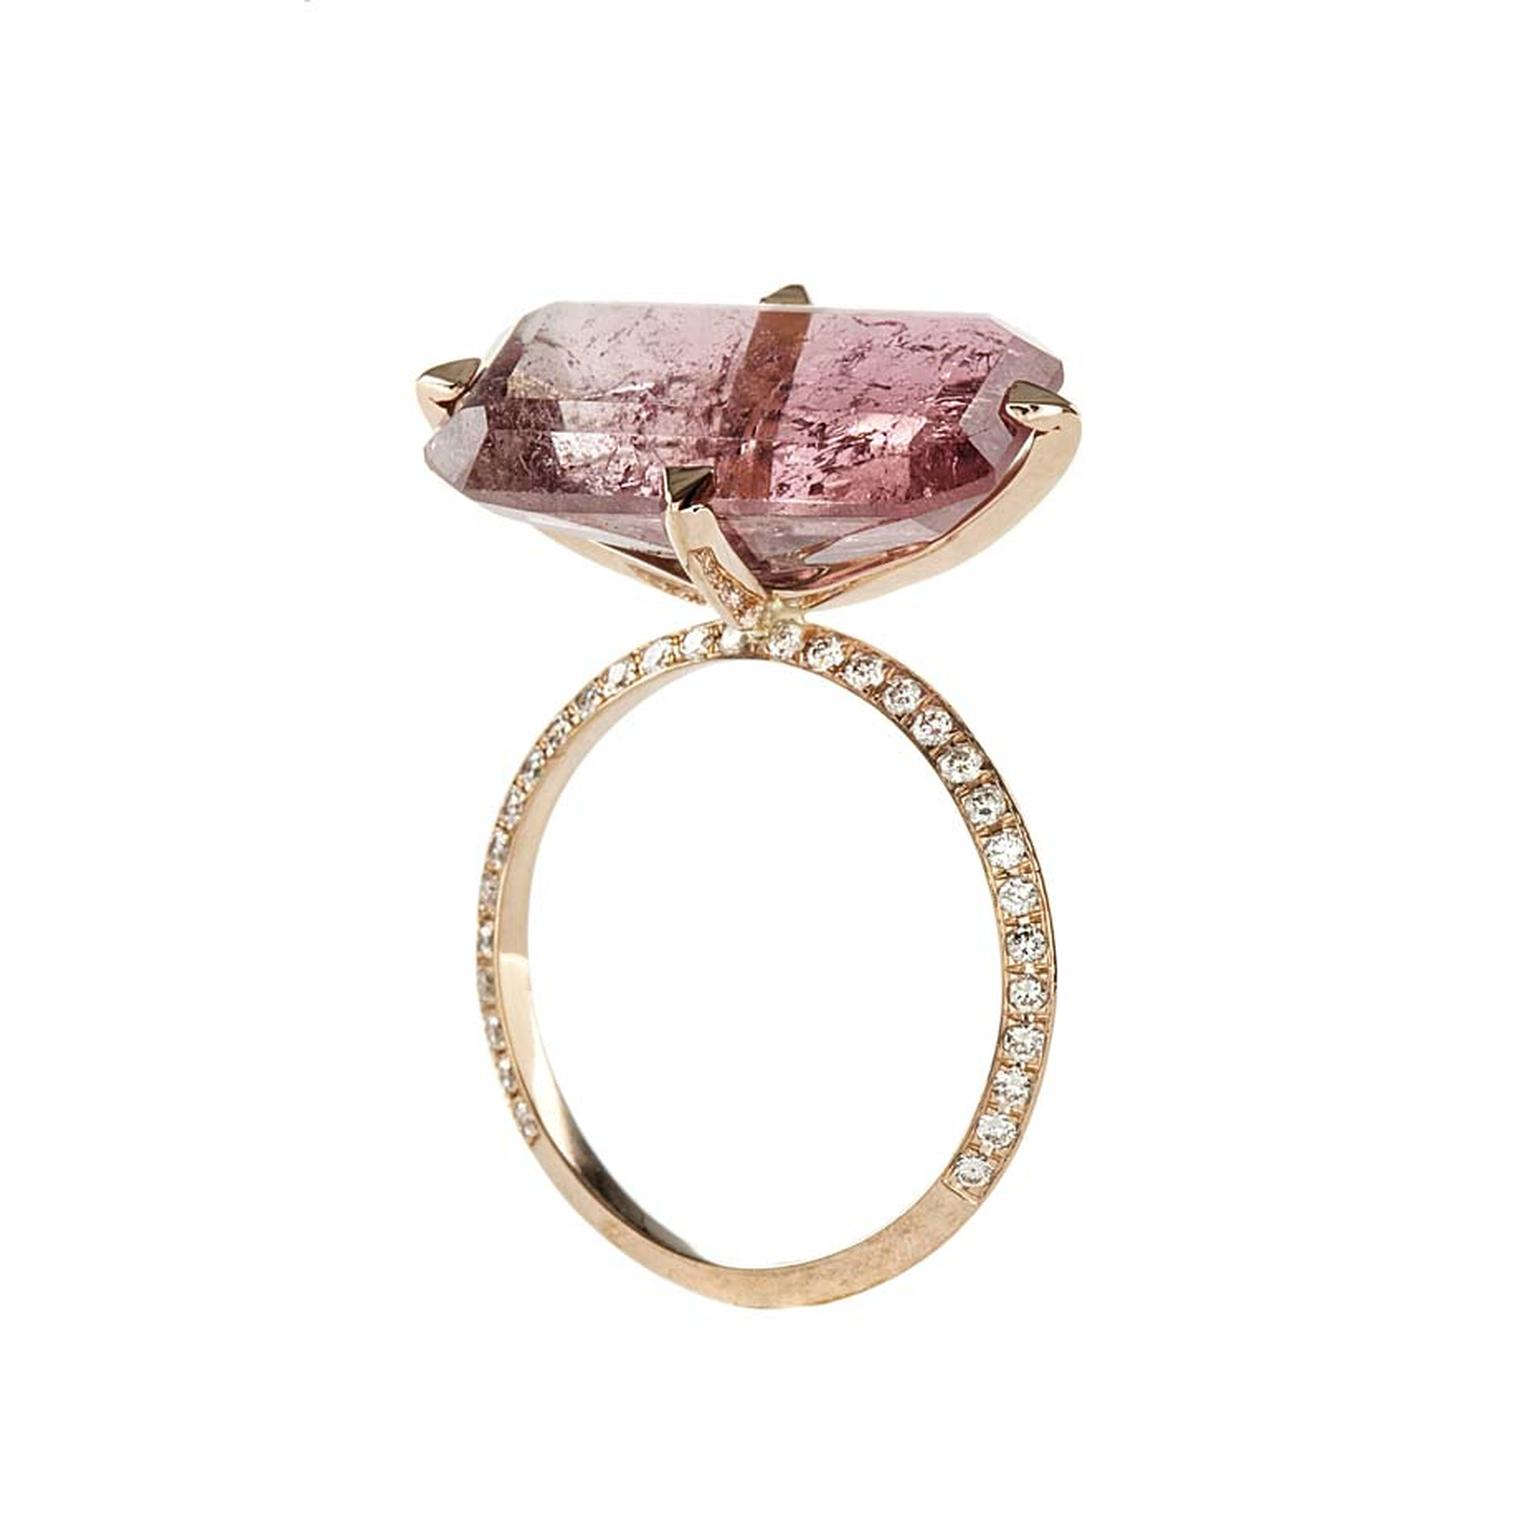 Lito pink gold ring with a 9.35ct pink octagon-cut tourmaline and white brilliant-cut diamonds